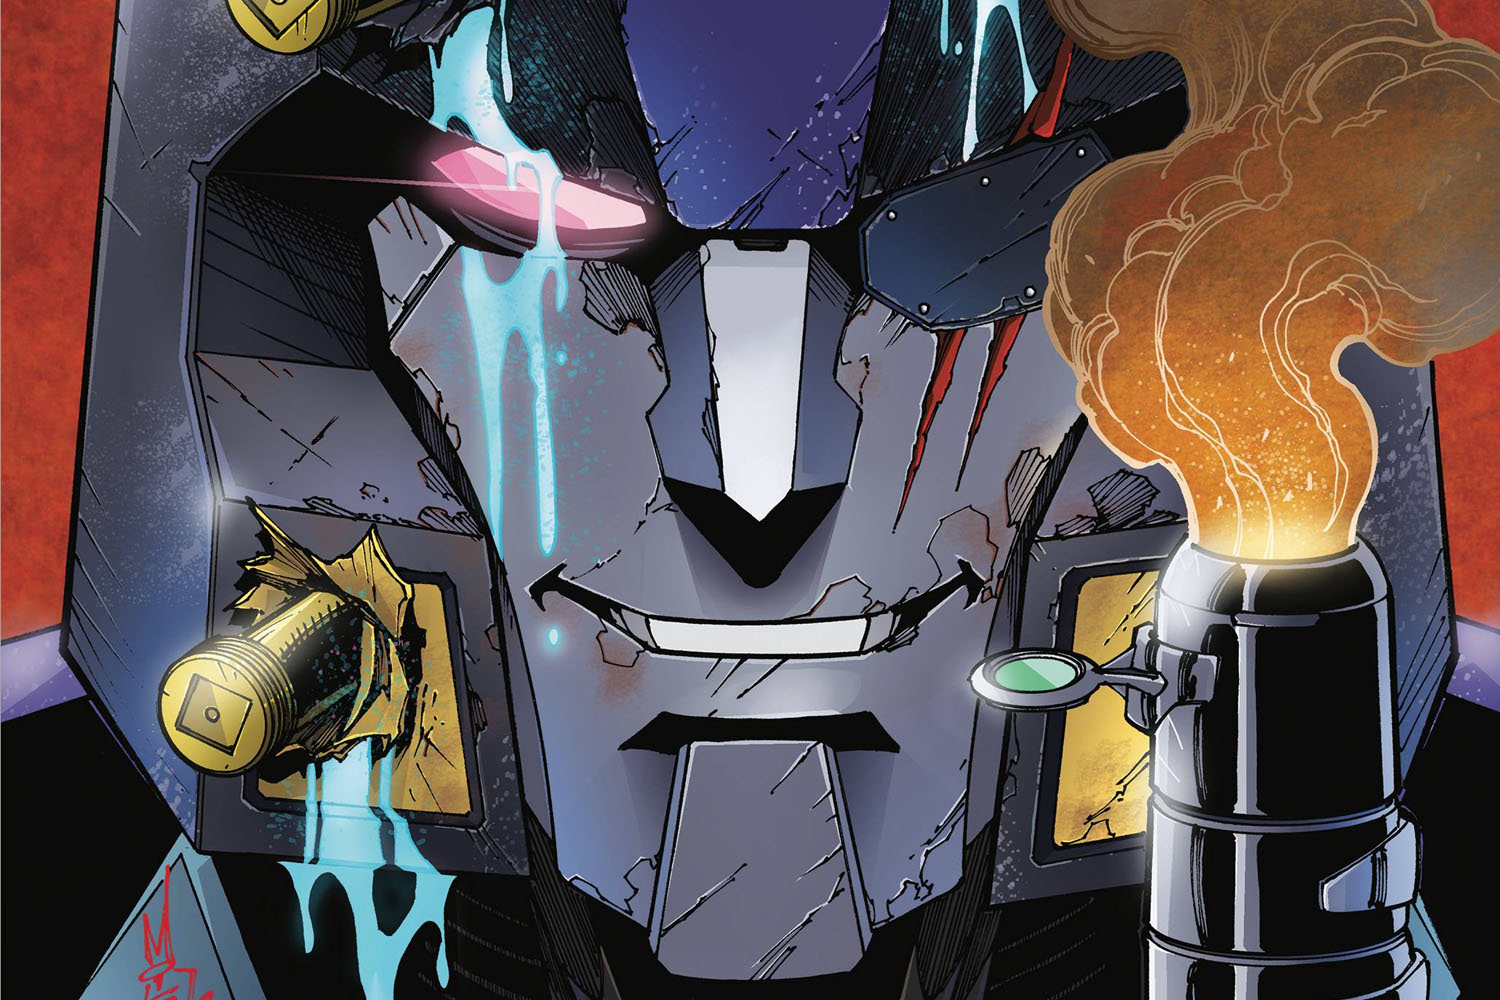 'Transformers: Shattered Glass' #1 kicks off the mirror universe in a big way